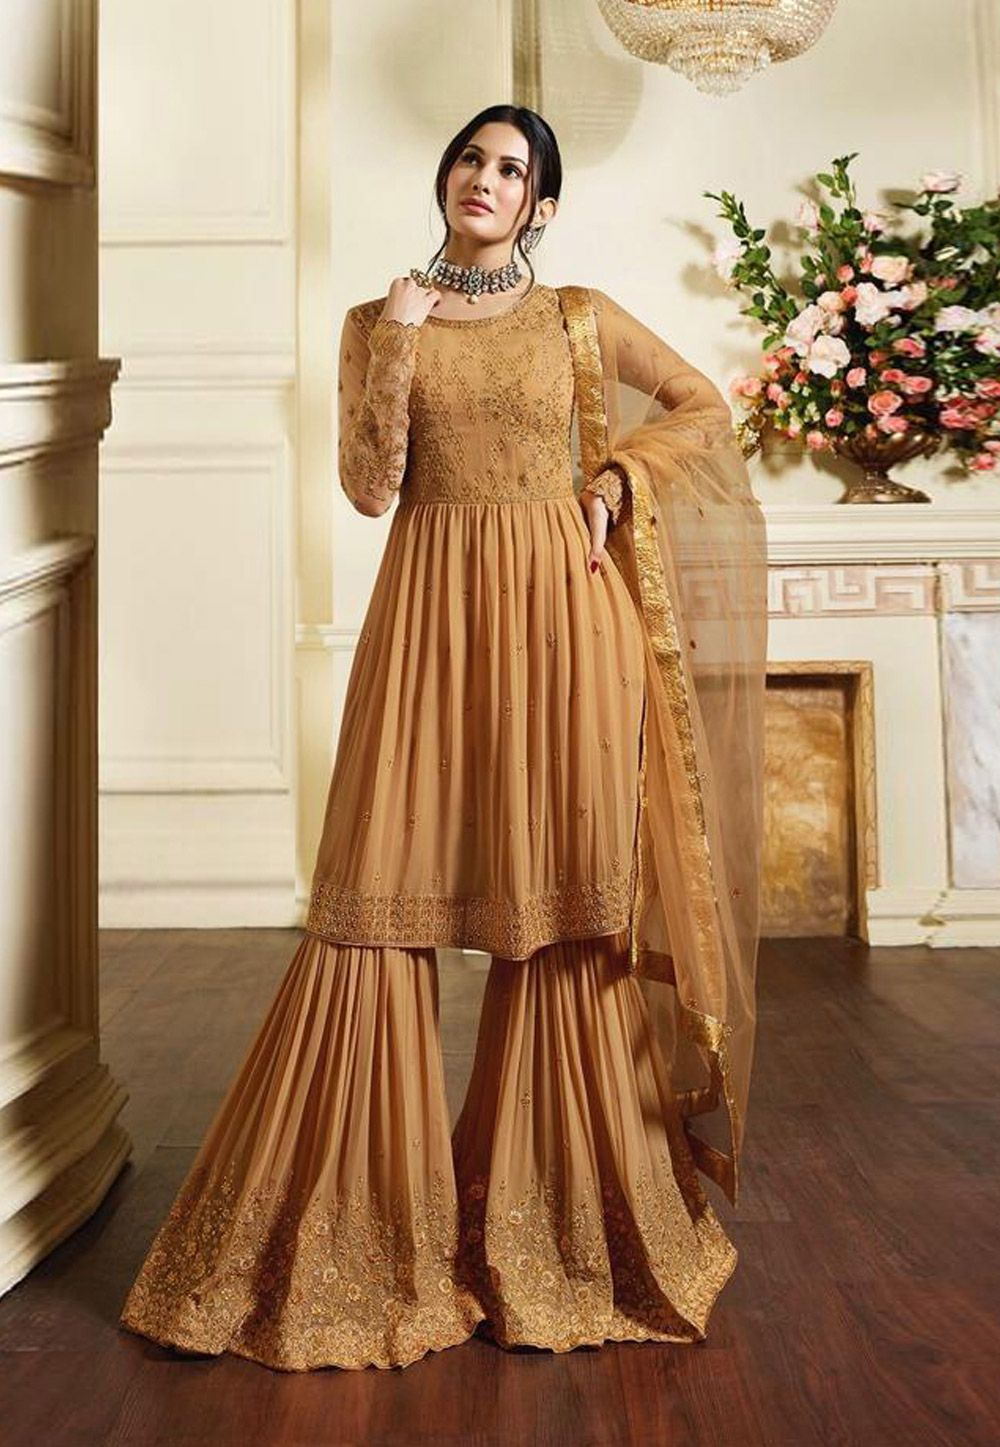 c55e0d4317 Buy Beige Georgette Sharara Style Suit 158666 online at lowest price from  huge collection of salwar kameez at Indianclothstore.com.